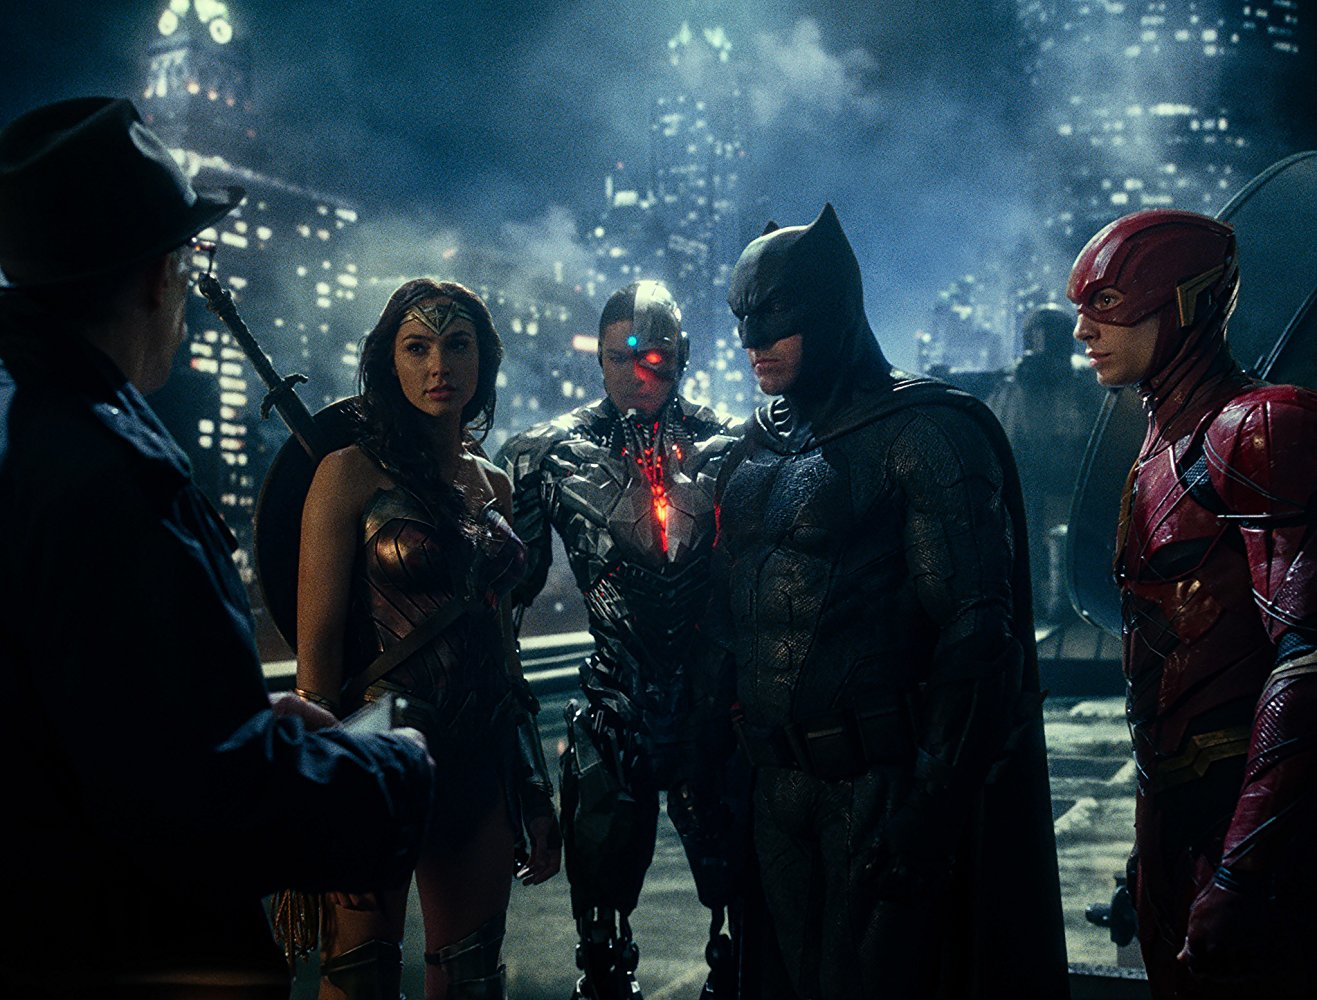 JK Simmons, Gal Gadot, Ray Fisher, Ben Affleck, and Ezra Miller in Justice League